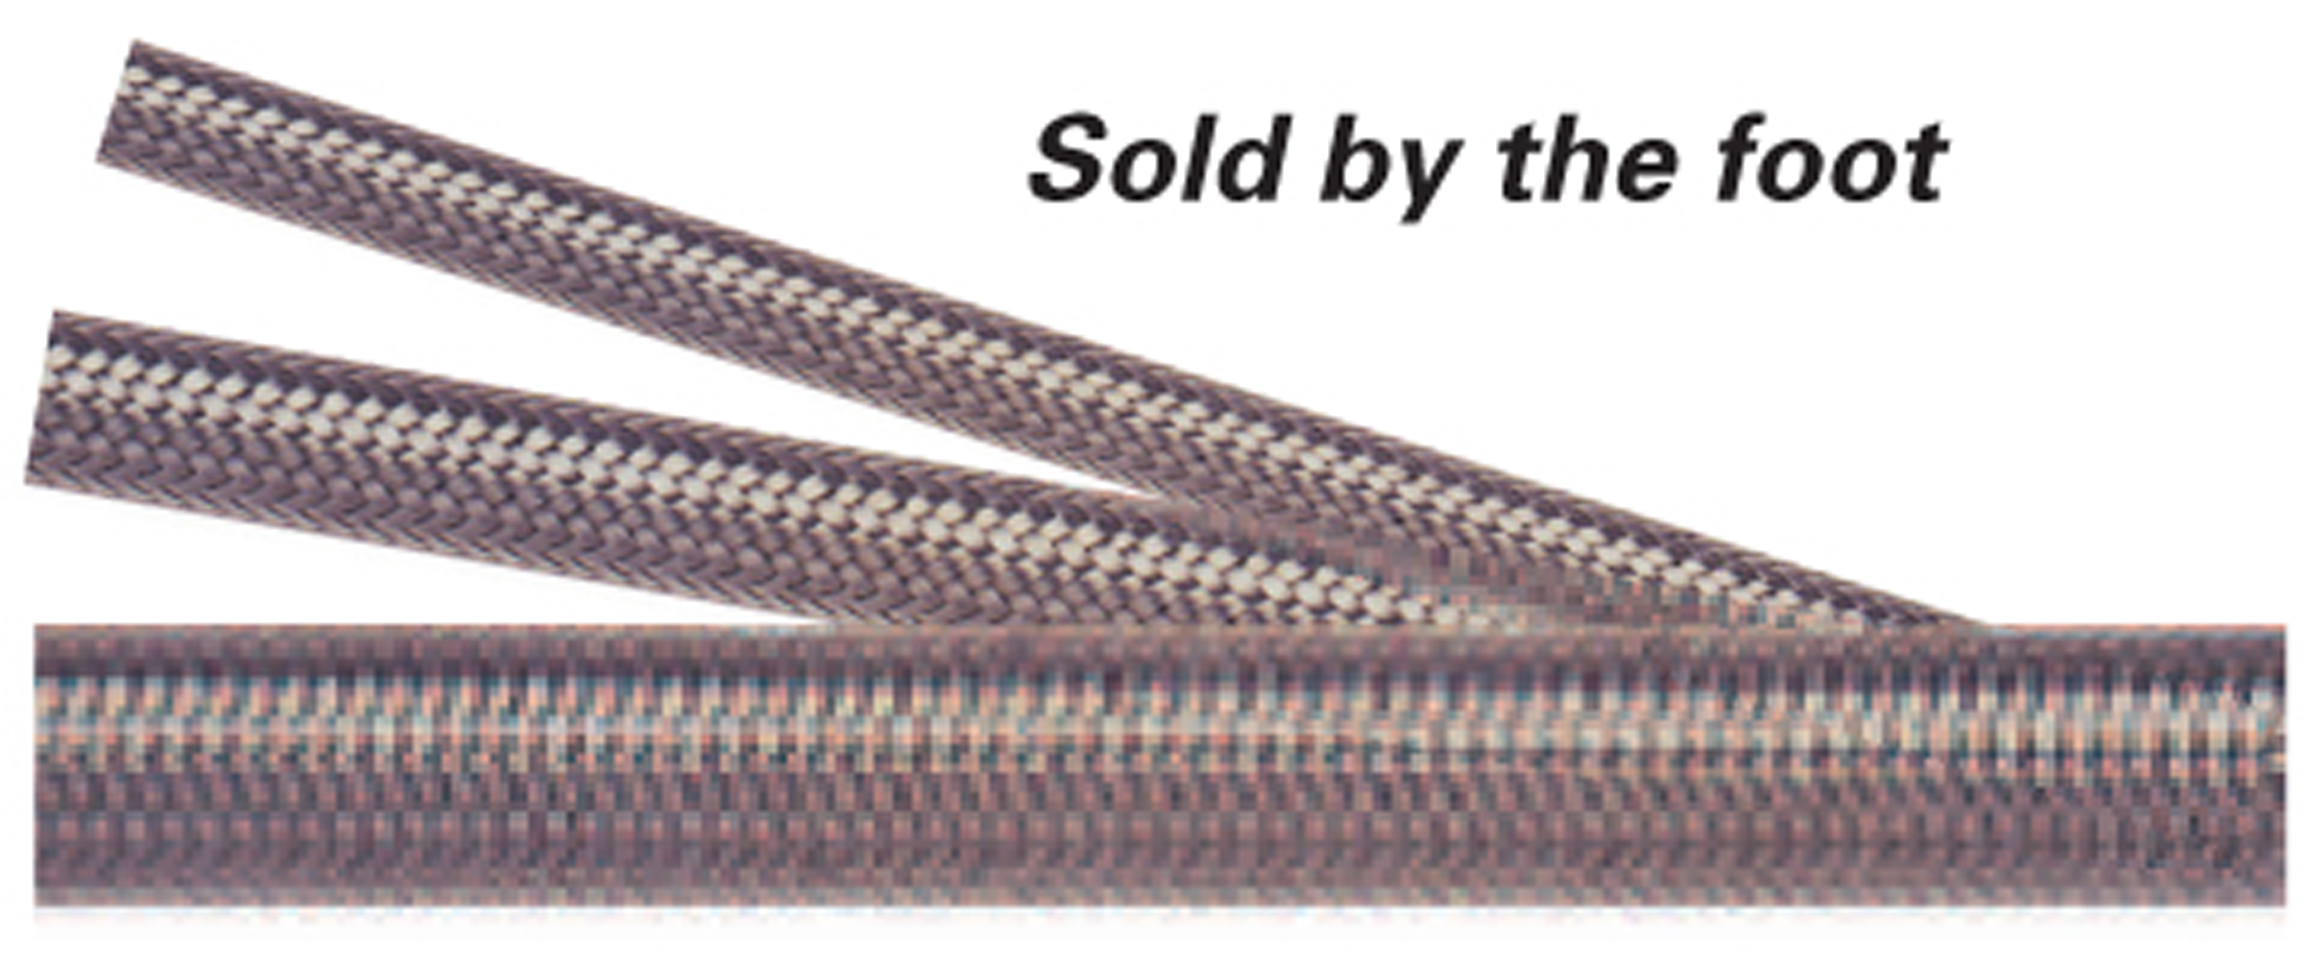 Jones Stainless Steel Braided #4 Hose - (Sold per foot)